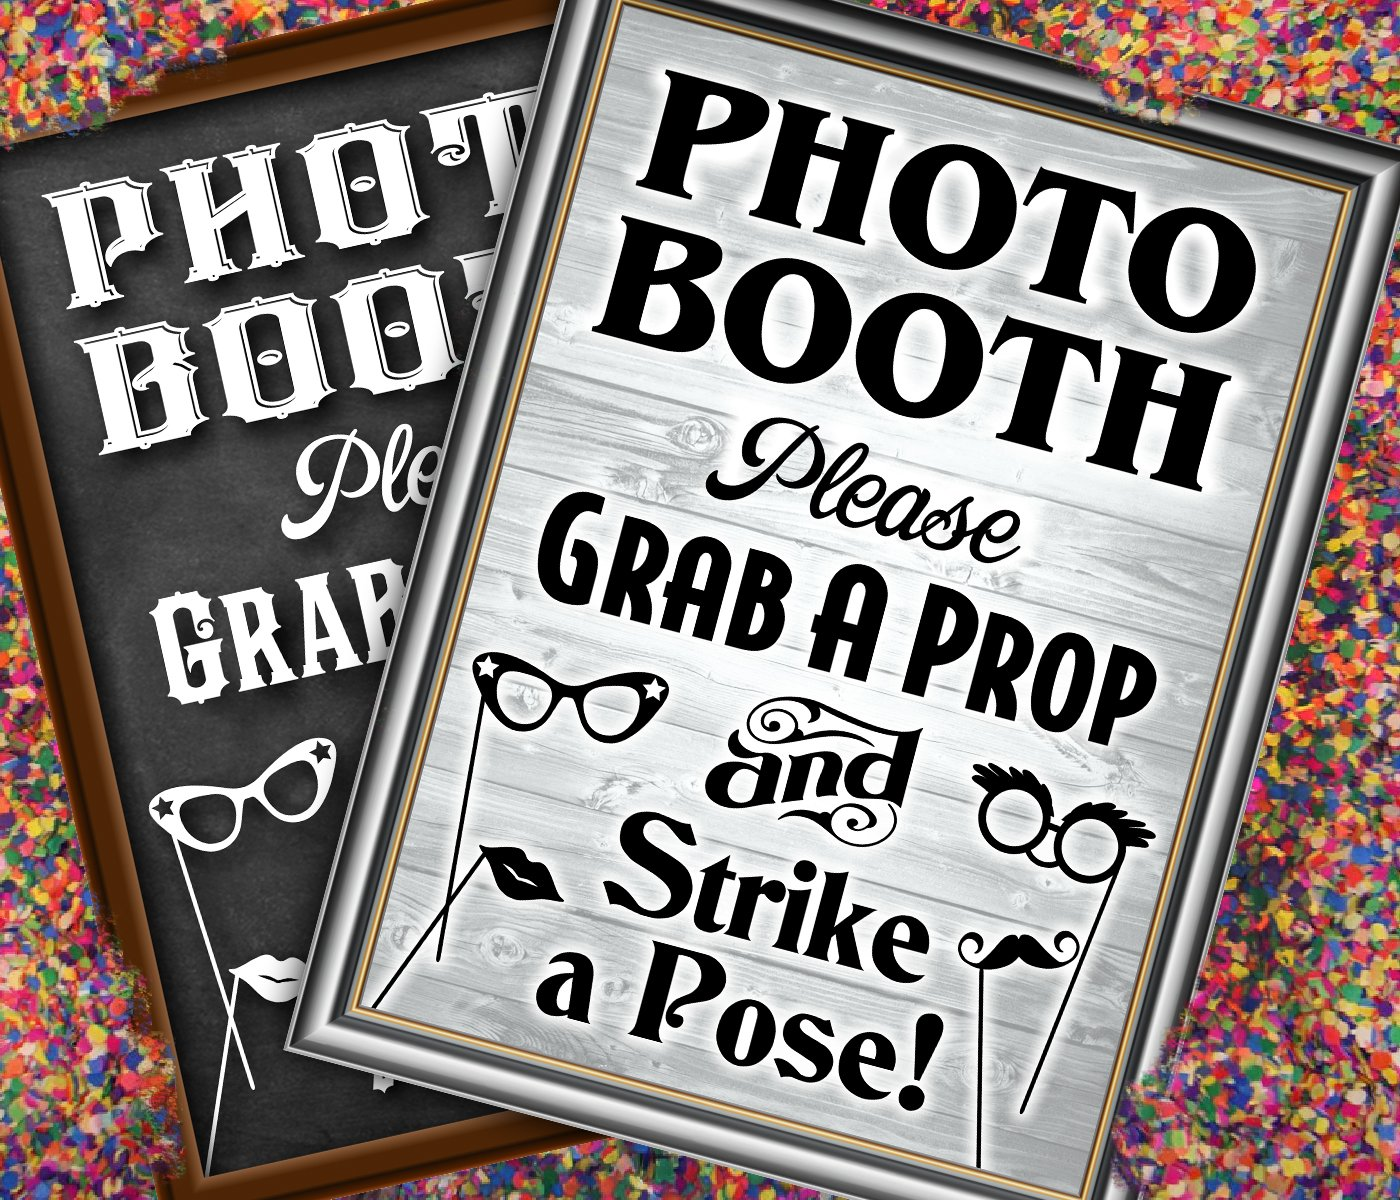 Bigtime Designs Photo Booth Props Sign, 2-Sided, Use for any Wedding, Party or Event Chalkboard Style on 1 Side and a Rustic Vintage Look on the 2nd, 16'' L x 12'' W